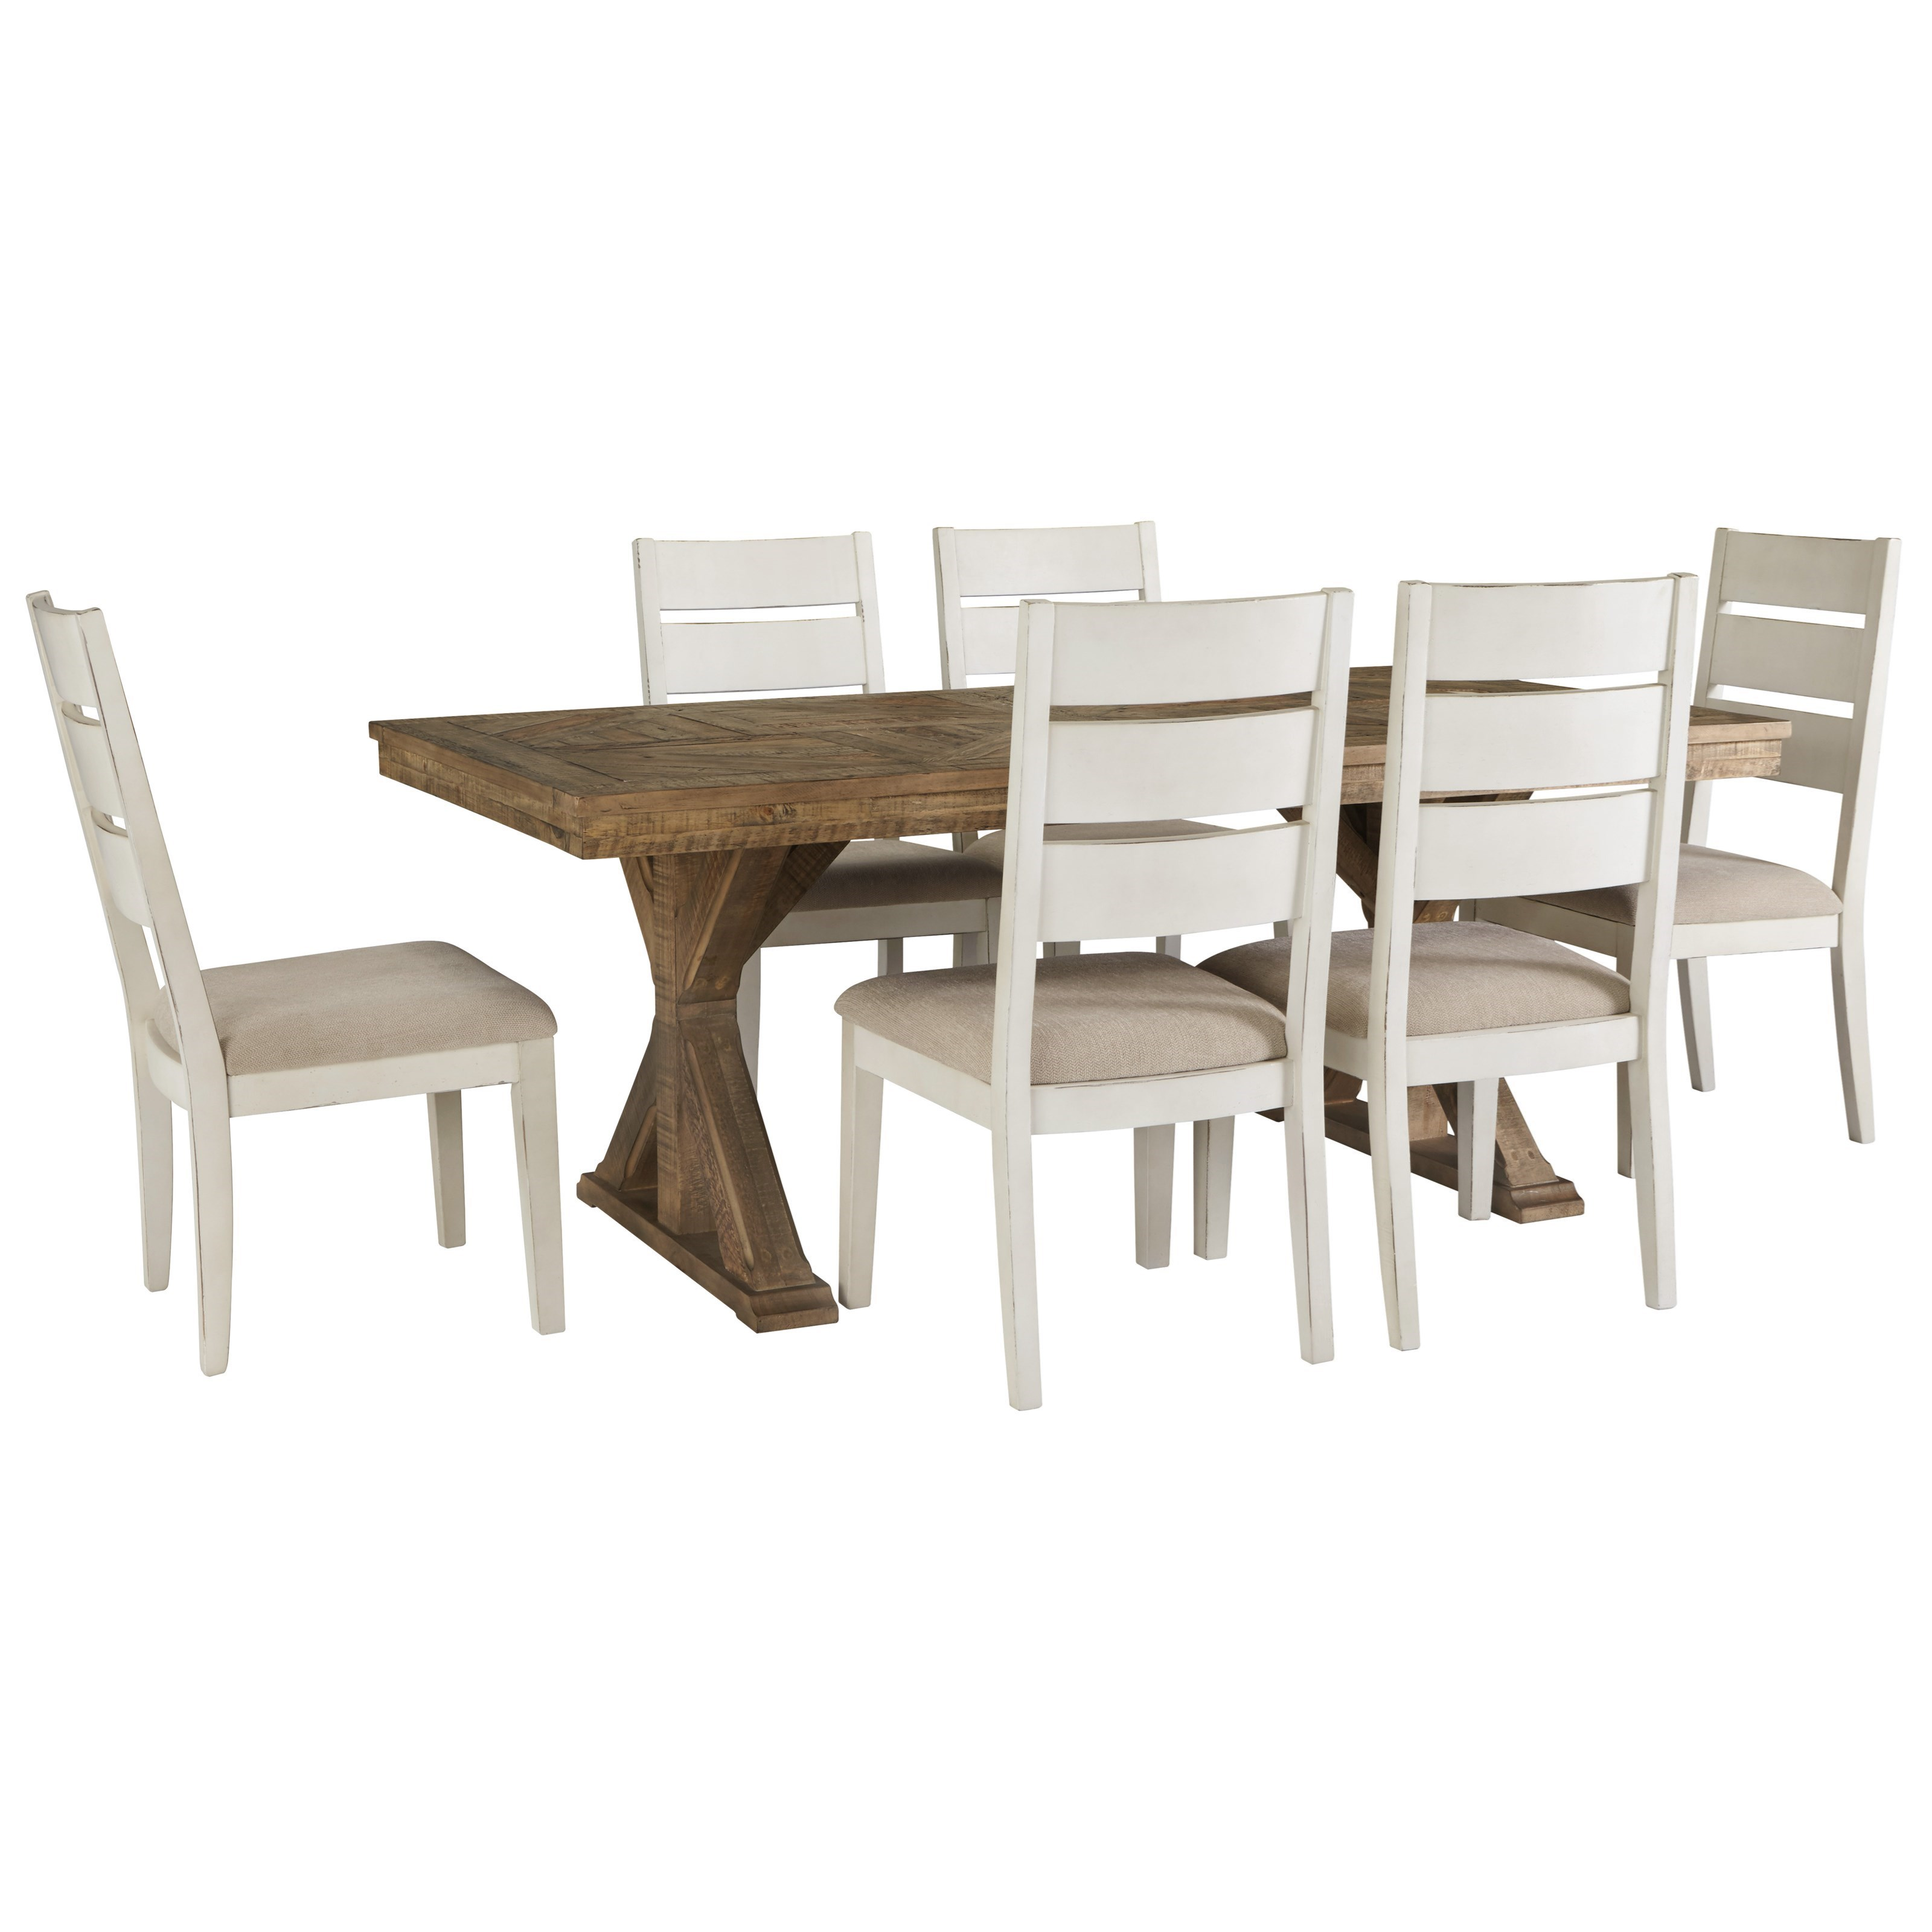 Grindleburg 7 Piece Rectangular Table and Chair Set by Signature Design by Ashley at Value City Furniture